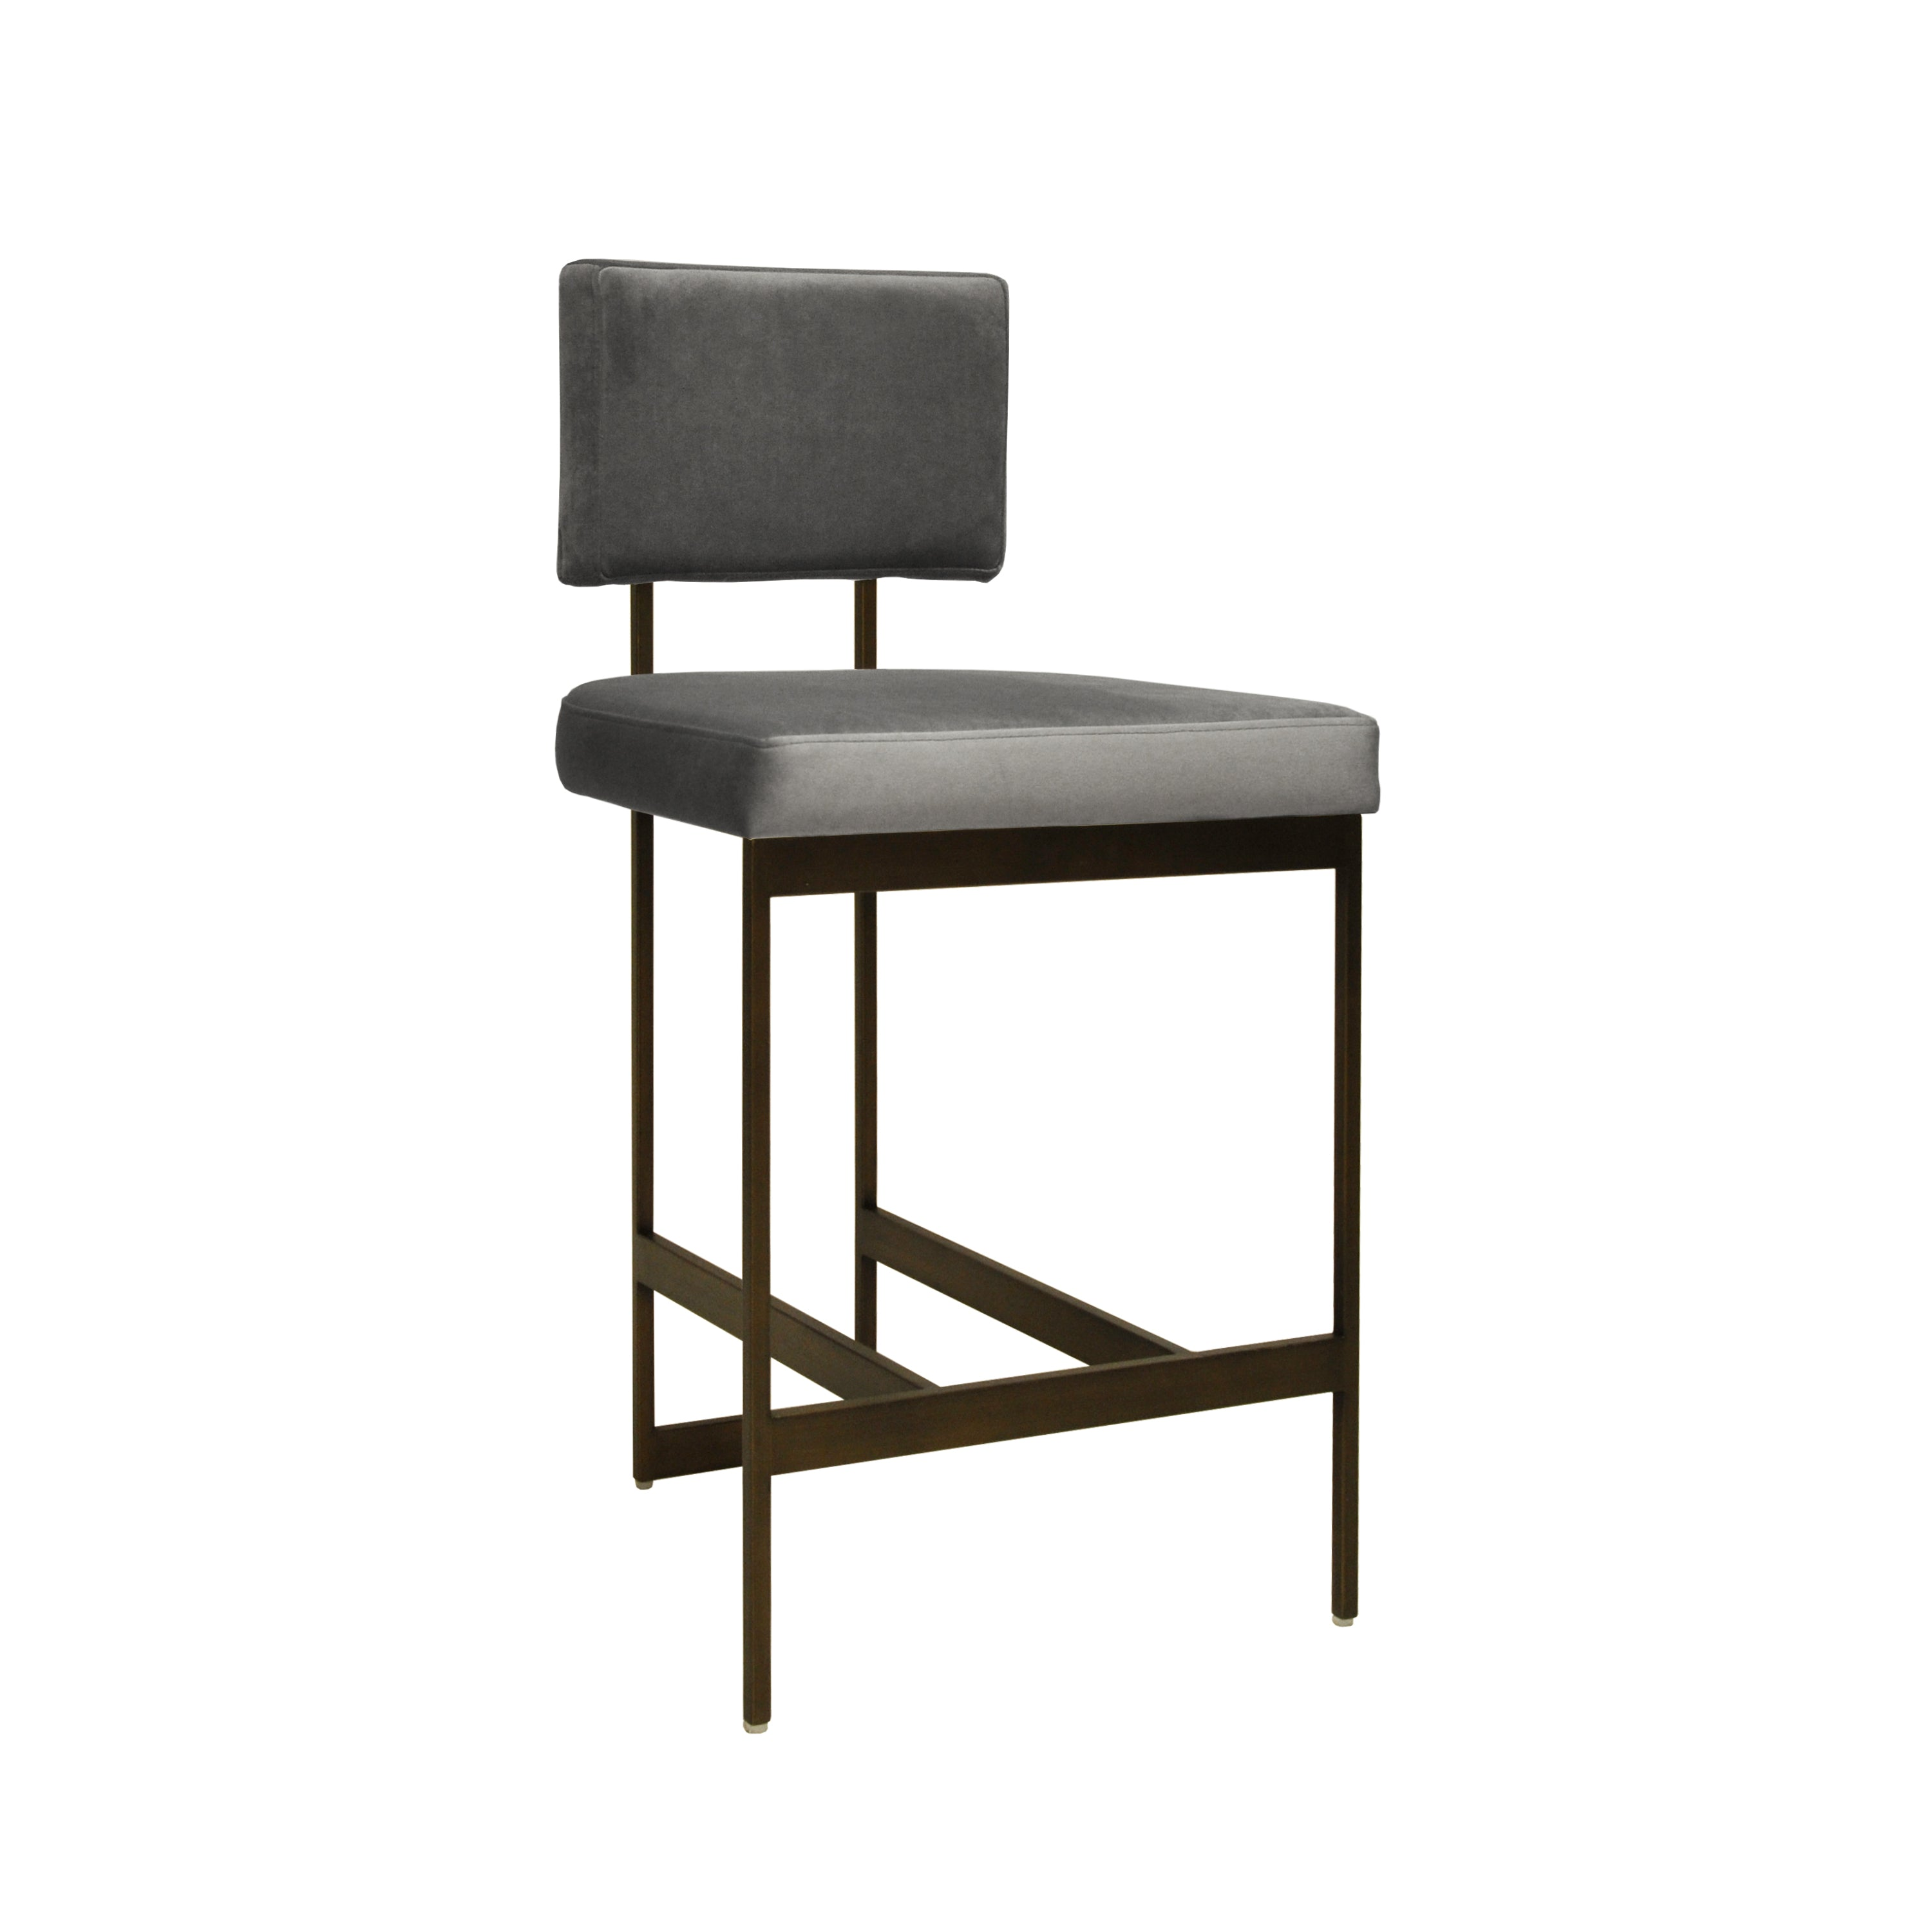 Groovy Worlds Away Baylor Counter Stool Gmtry Best Dining Table And Chair Ideas Images Gmtryco